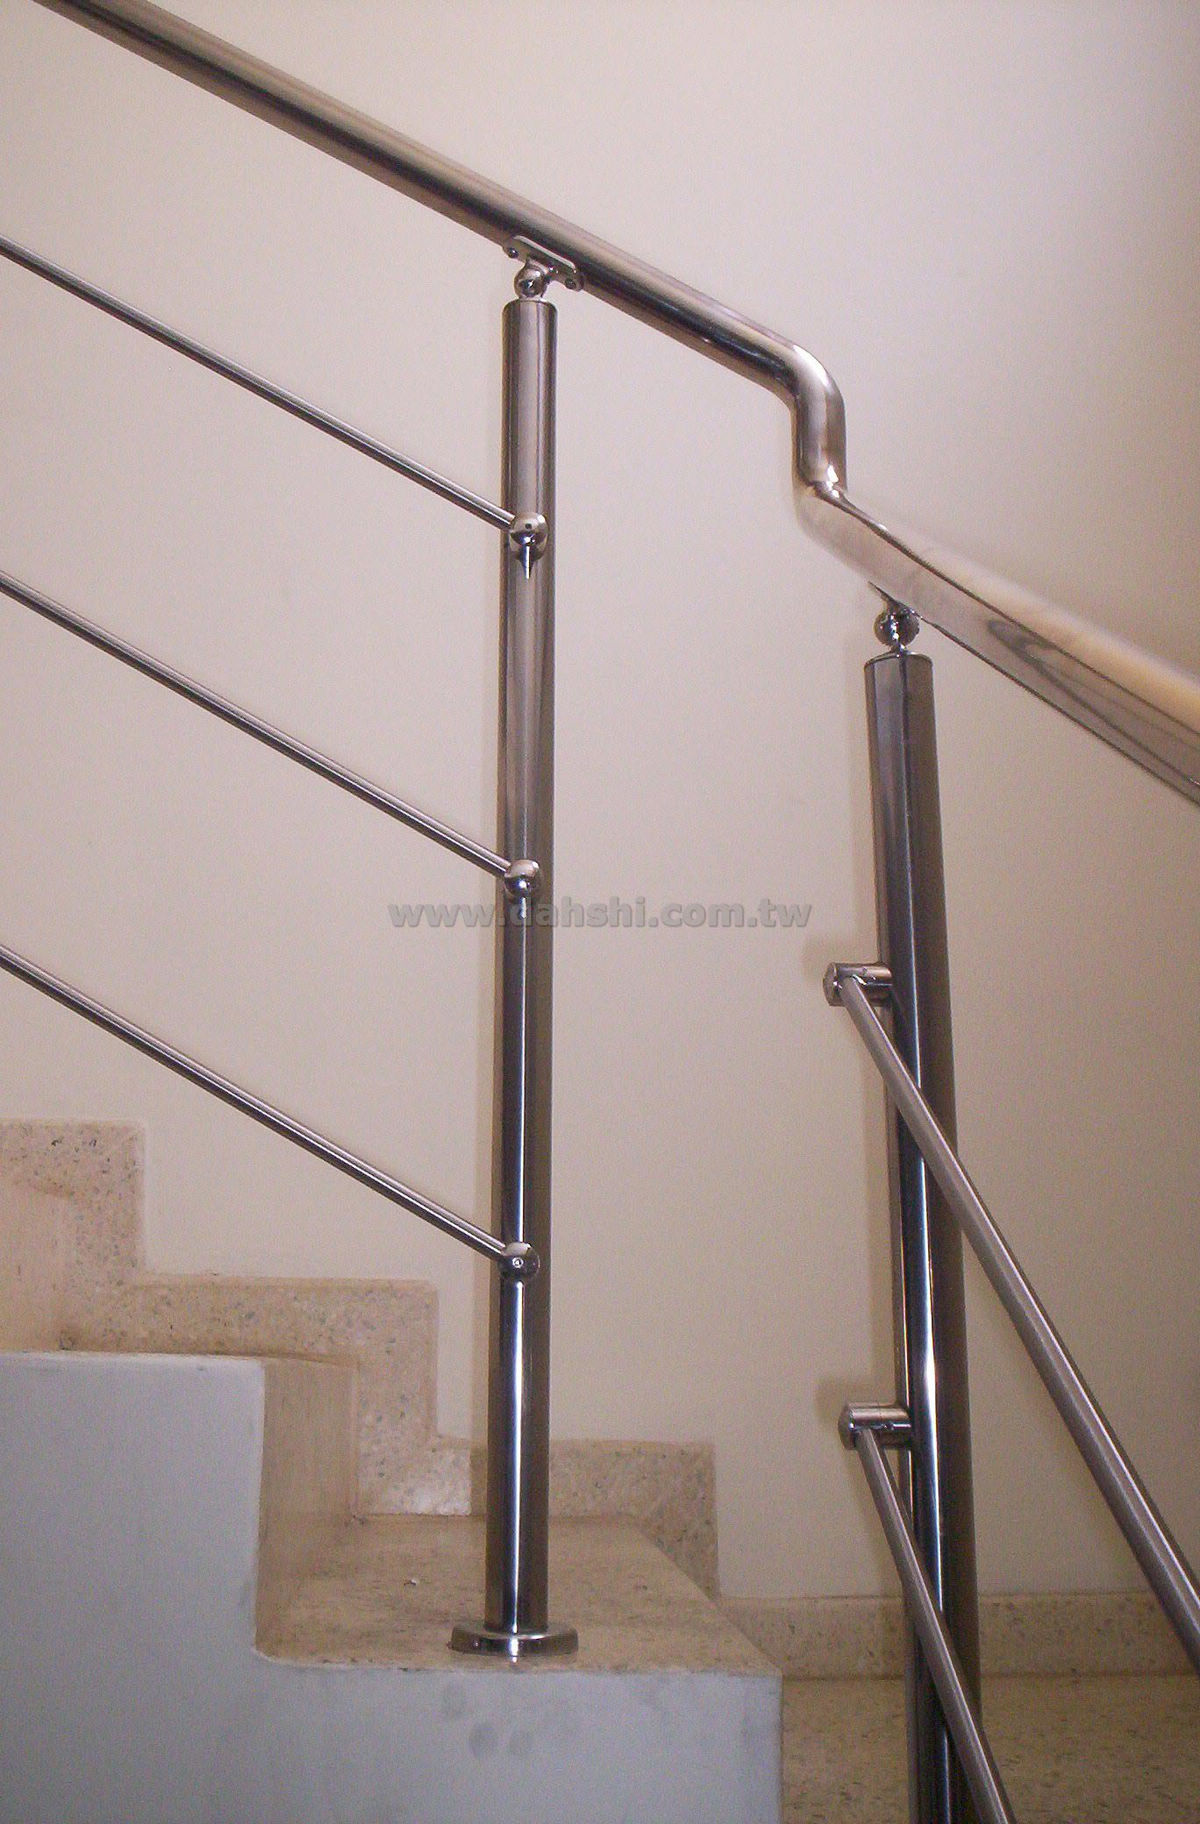 Handrail and Balusters Story for Xiomara Montiel